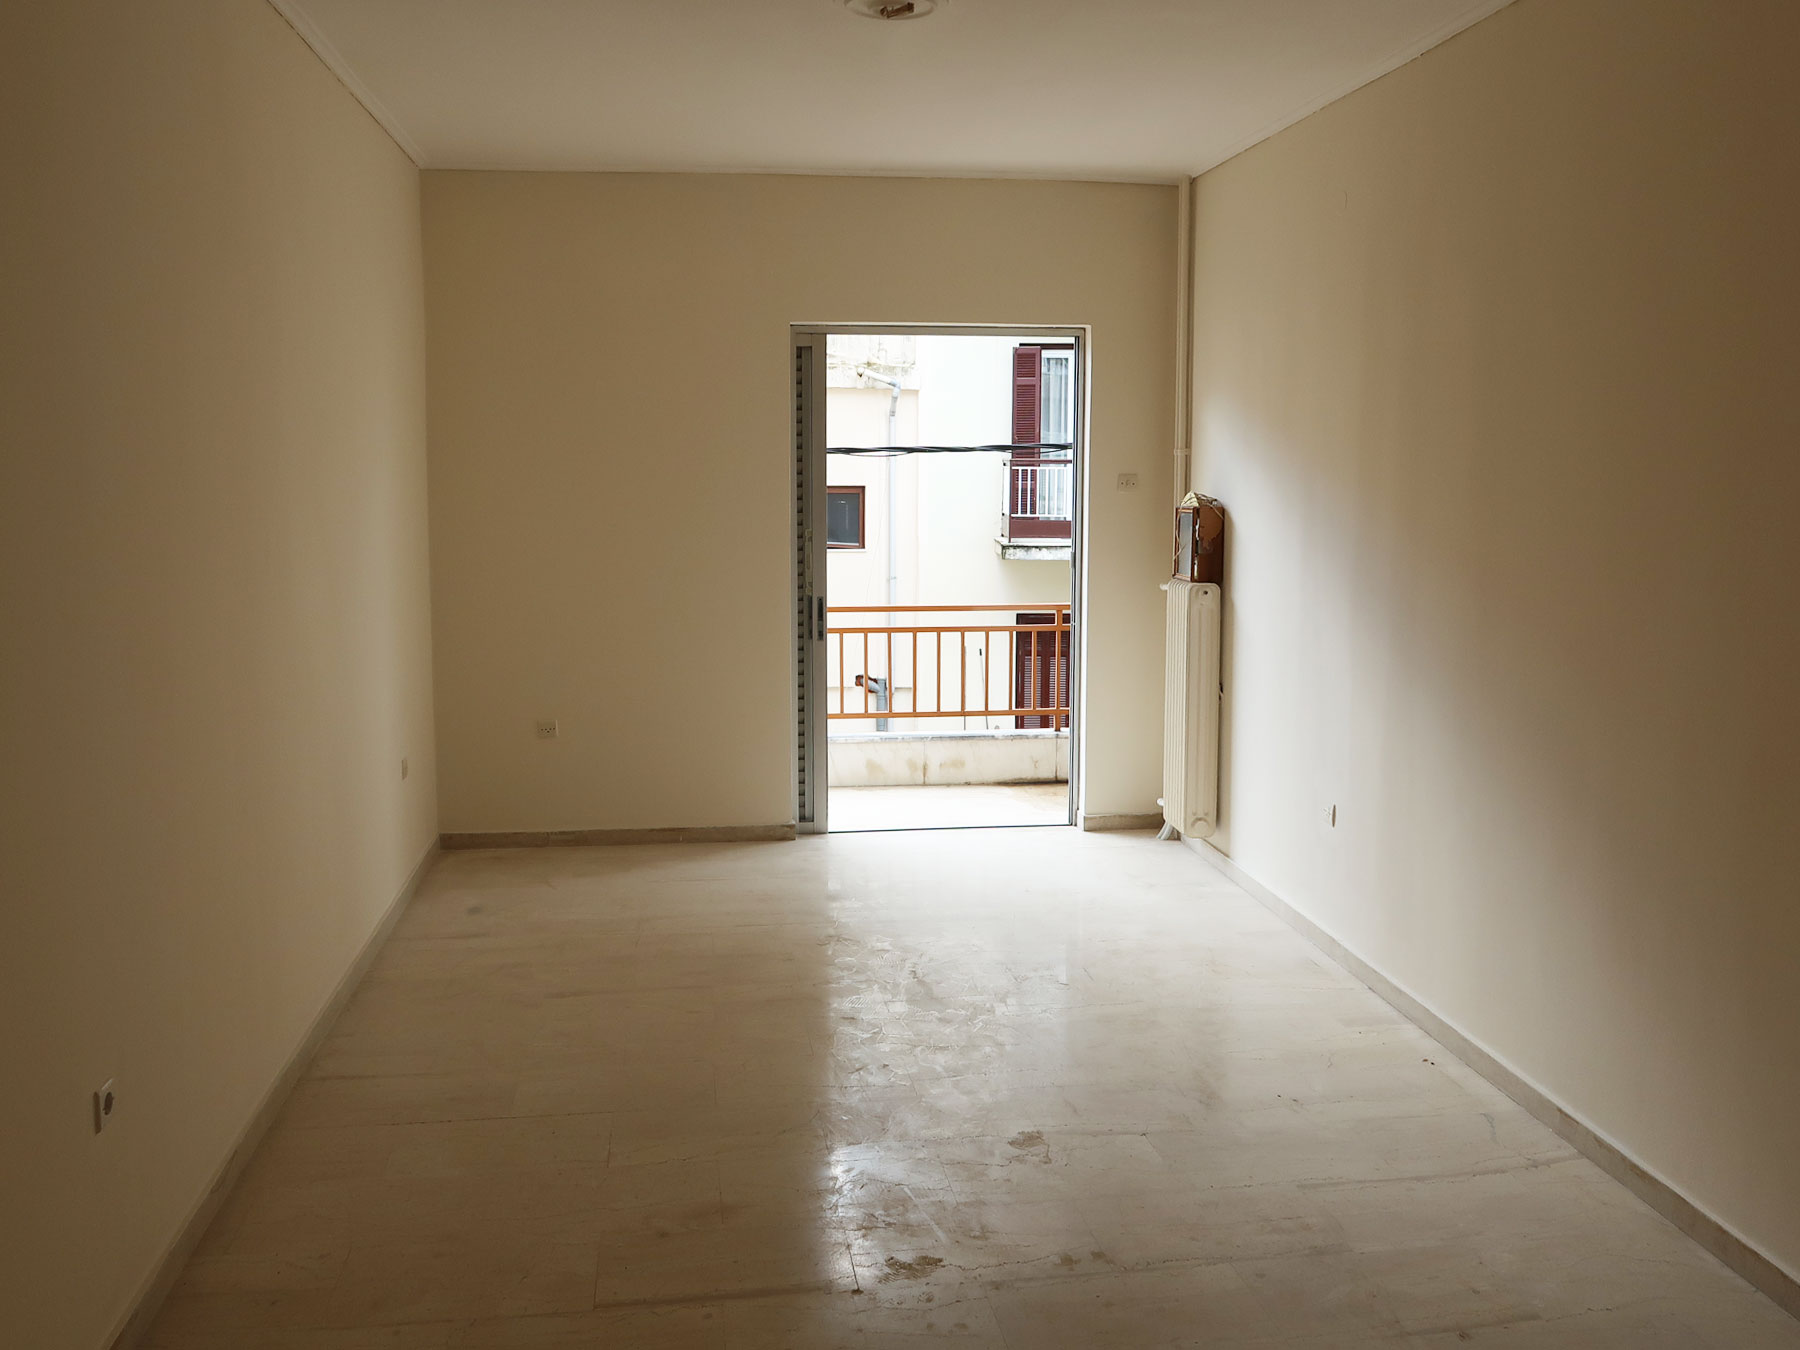 For sale 3 bedroom apartment 96 sq.m. 2nd floor with 2 parking spaces near the plane tree in the center of Ioannina